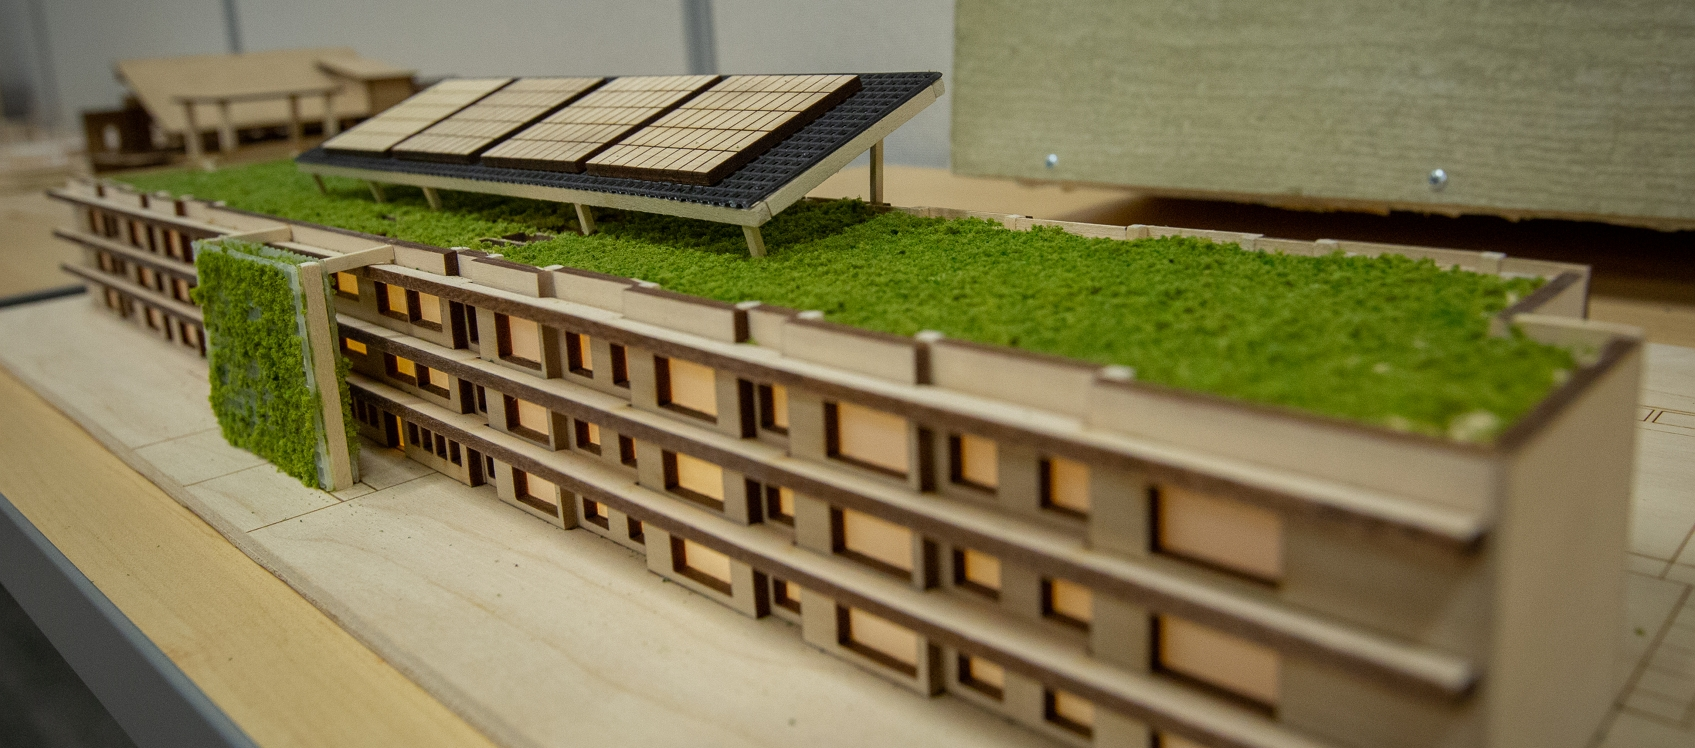 Photo of a wooden model from the 2019 Design Challenge. The model building appears to have solar panels on the roof as well as grassy areas.